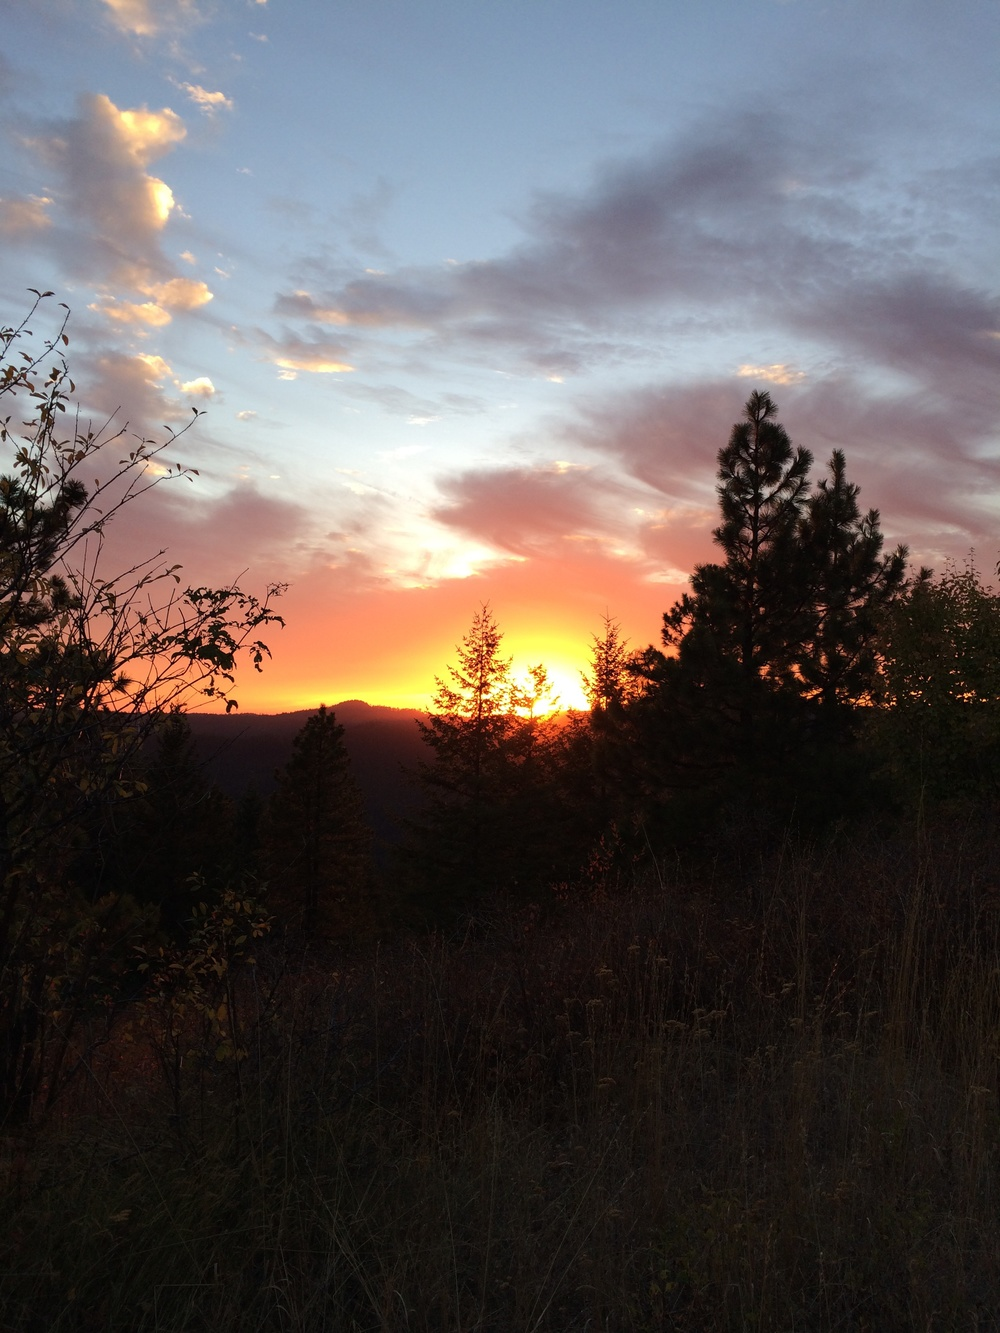 The Sunset.  Here, this spot, somewhere in Idaho, we waited for the full moon to rise.  8 October 2014.